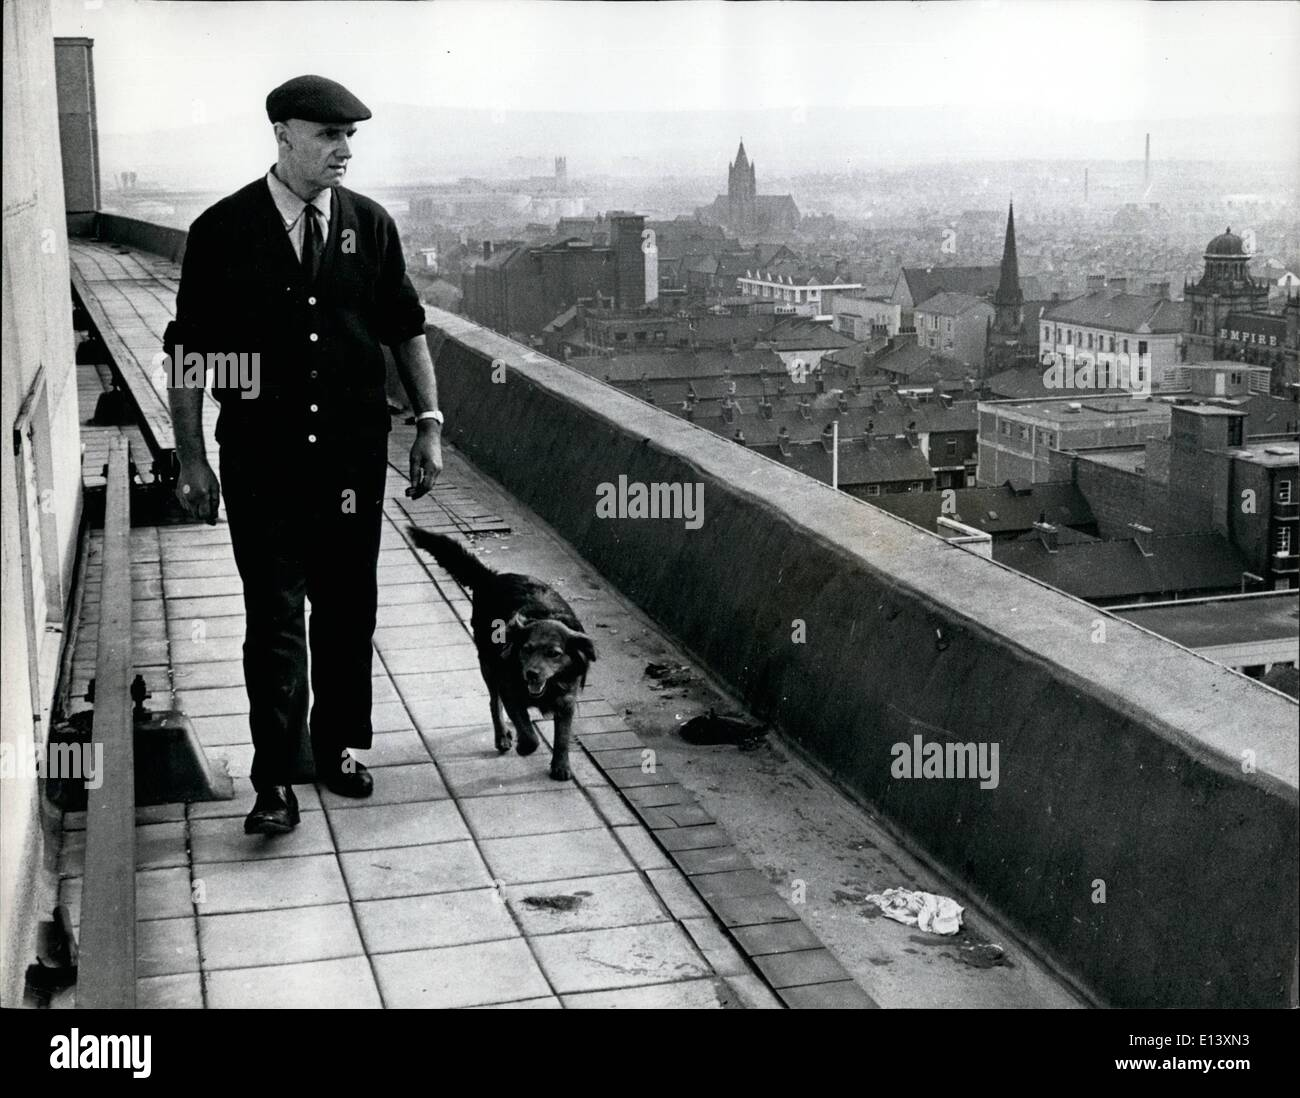 Mar. 27, 2012 - A Penthouse Kennel for Britian's Top Doggie: Even the dog with the longest pedigree in Britain is unlikely to challenge four year old mongrel Pepe for the has a kennel 100 feet above the streets of Teeside on the roof of skyscraper. Pepe moved up on top w - Stock Image